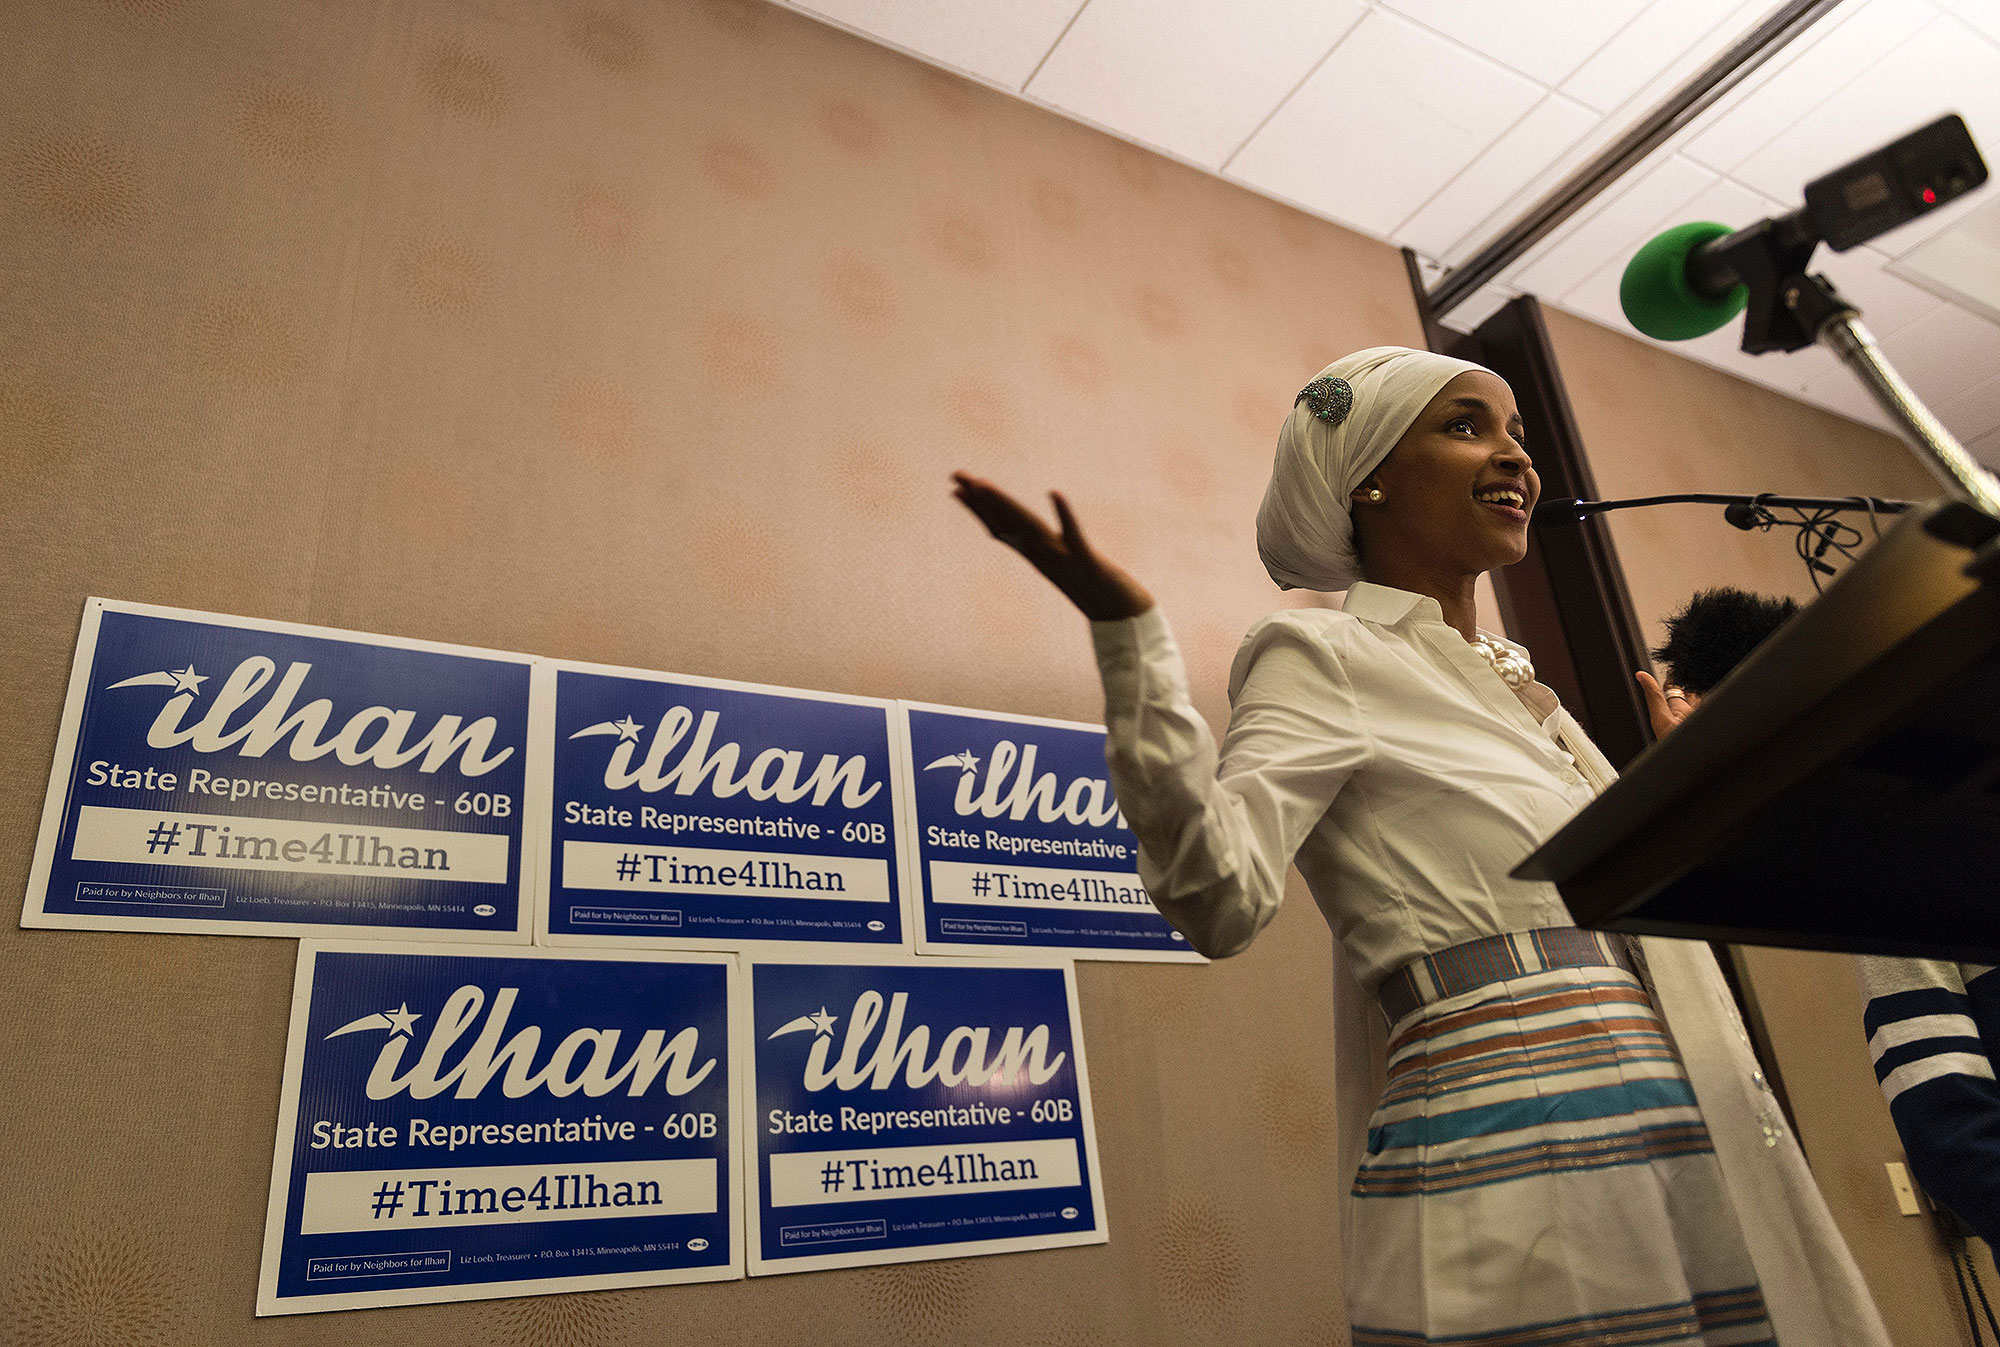 Ilhan Omar, candidate for State Representative for District 60B in Minnesota, gives an acceptance speech on election night, November 8, 2016 in Minneapolis, Minnesota. Omar, a refugee from Somalia, is the first Somali-American Muslim woman to hold public office. / AFP / STEPHEN MATUREN (Photo credit should read STEPHEN MATUREN/AFP/Getty Images)